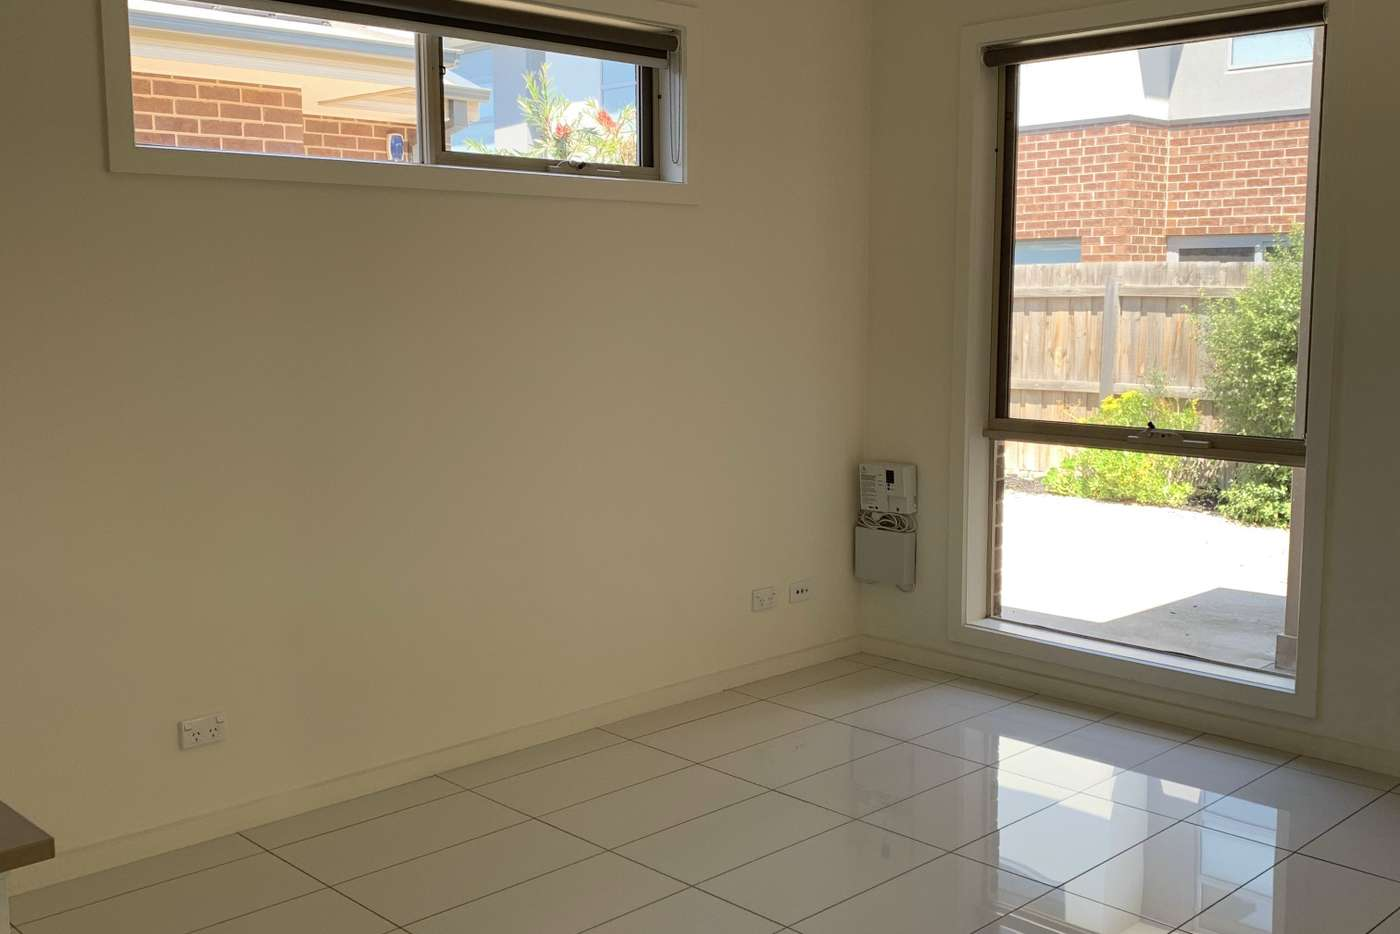 Seventh view of Homely unit listing, 4/27 Clydesdale Road, Airport West VIC 3042